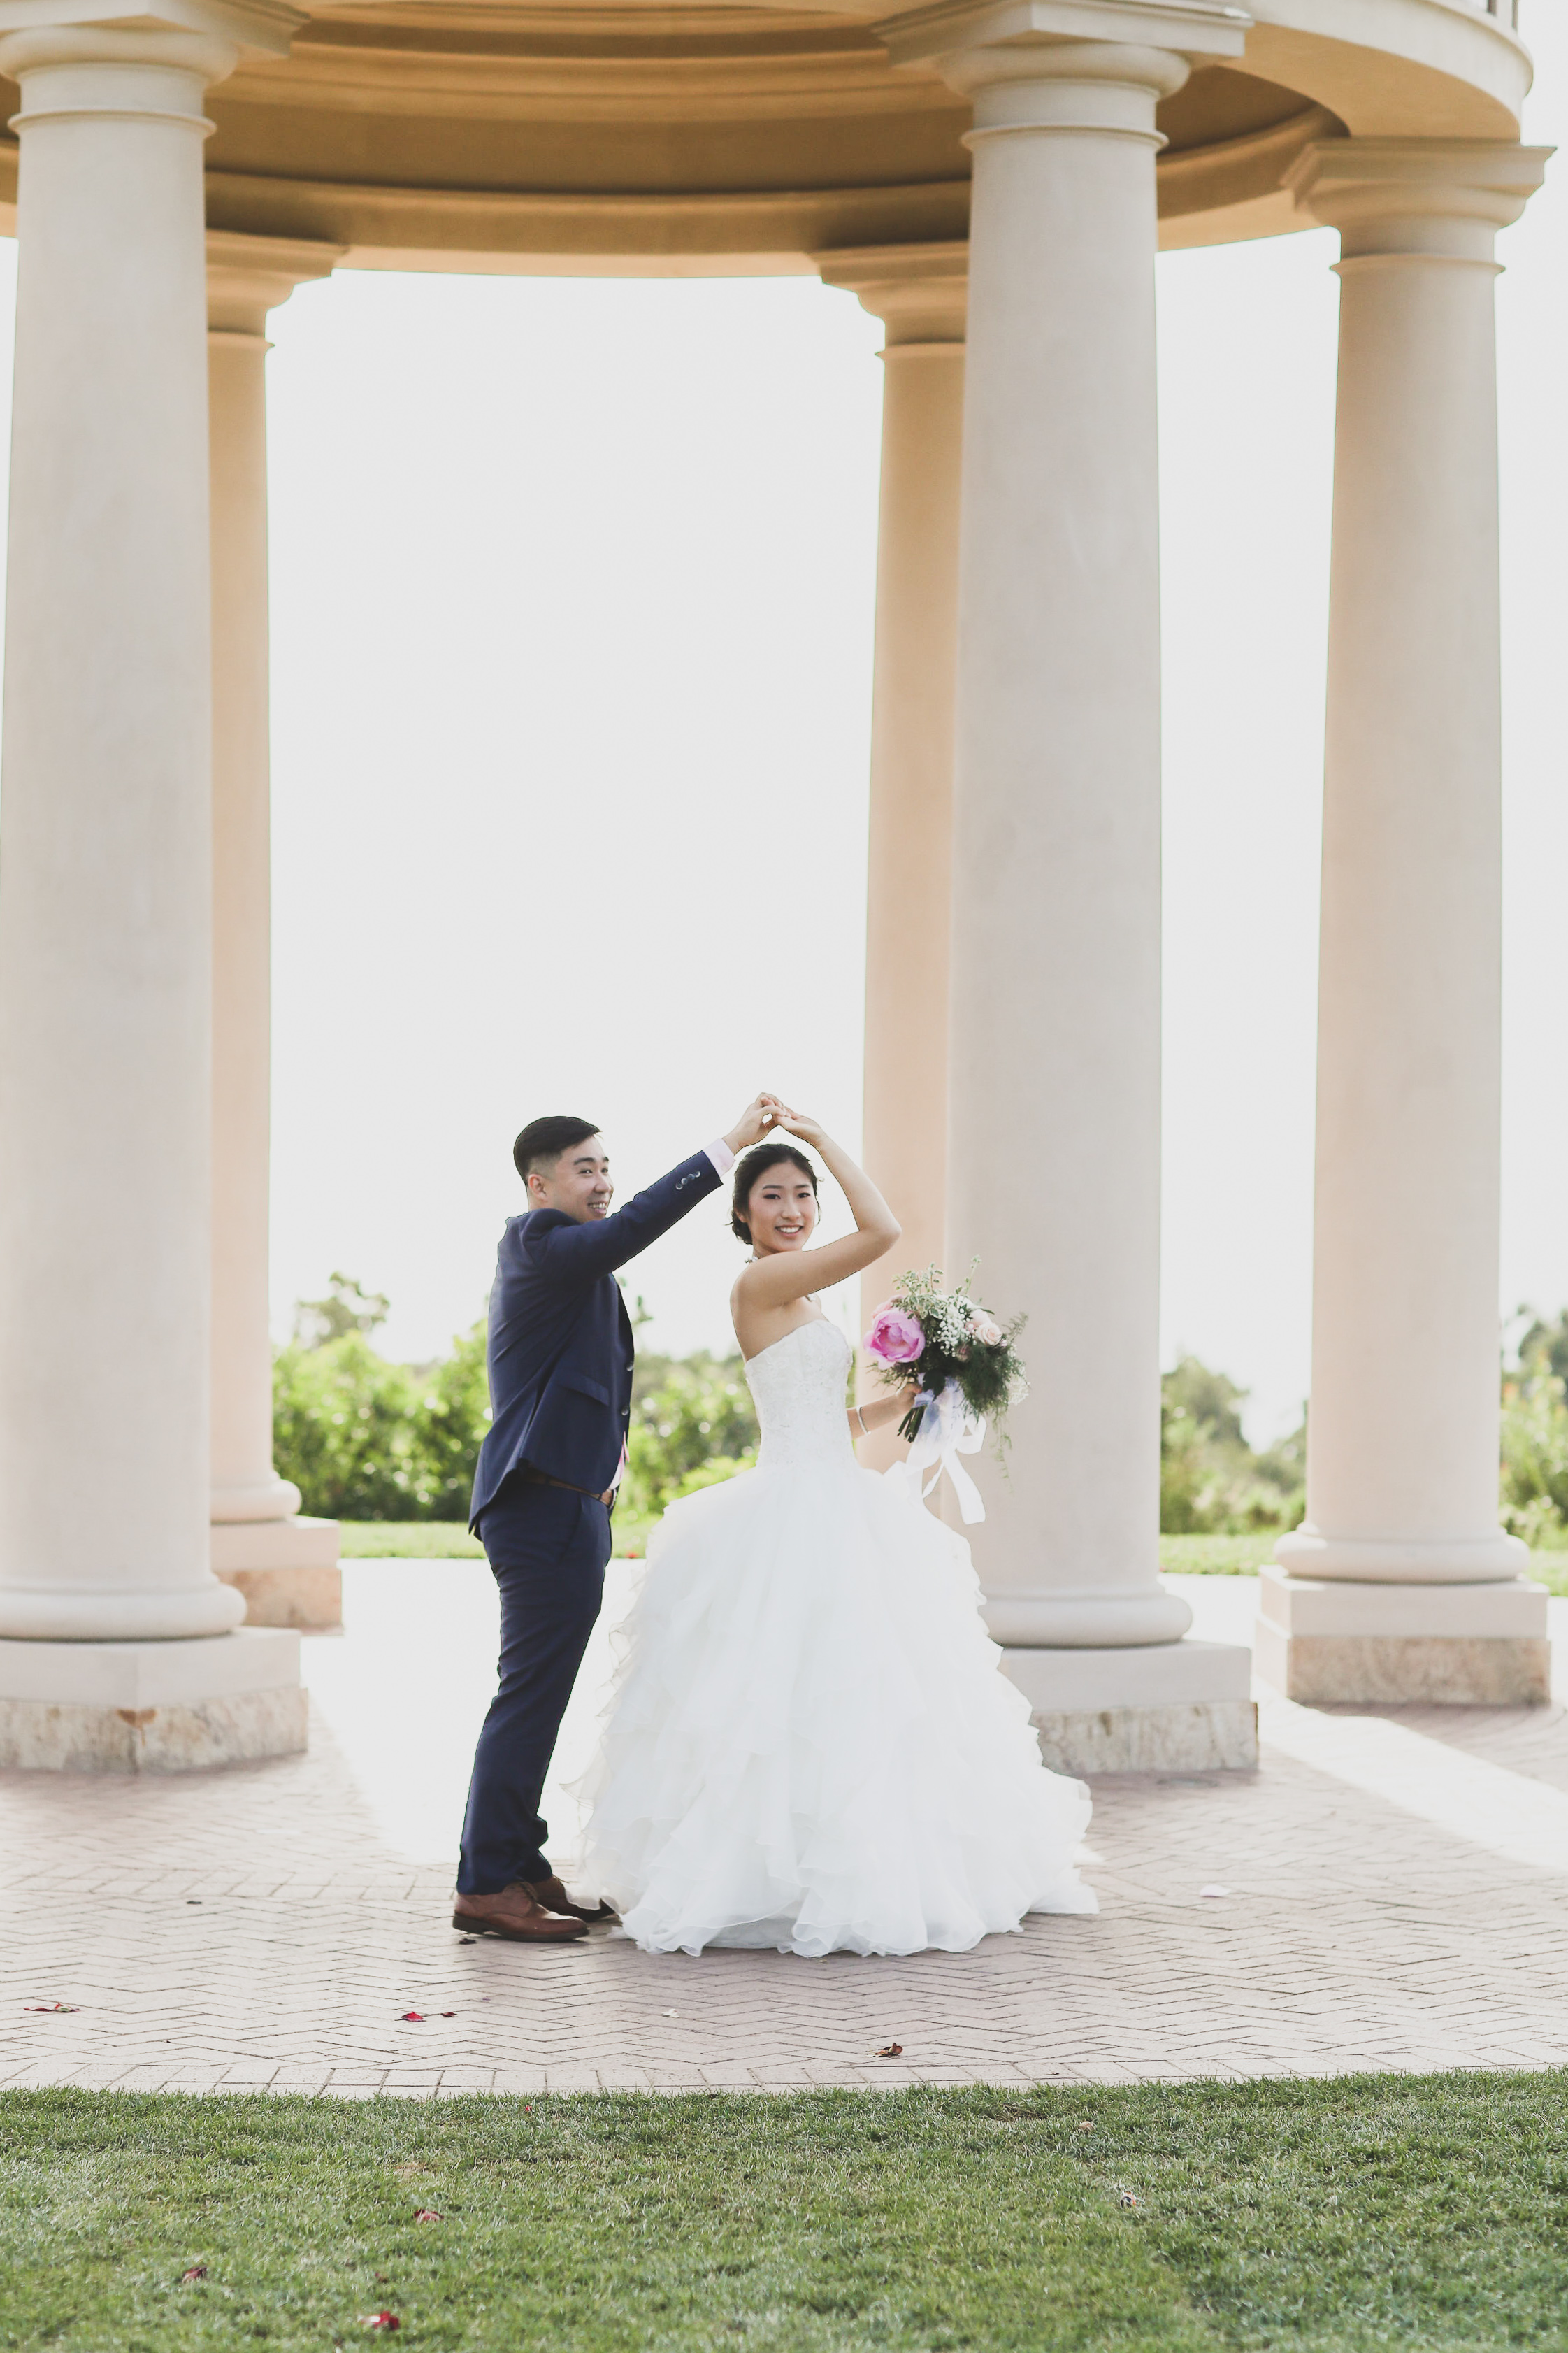 Bride and groom dance under the rotunda at the Resort at Pelican Hill in Orange County.